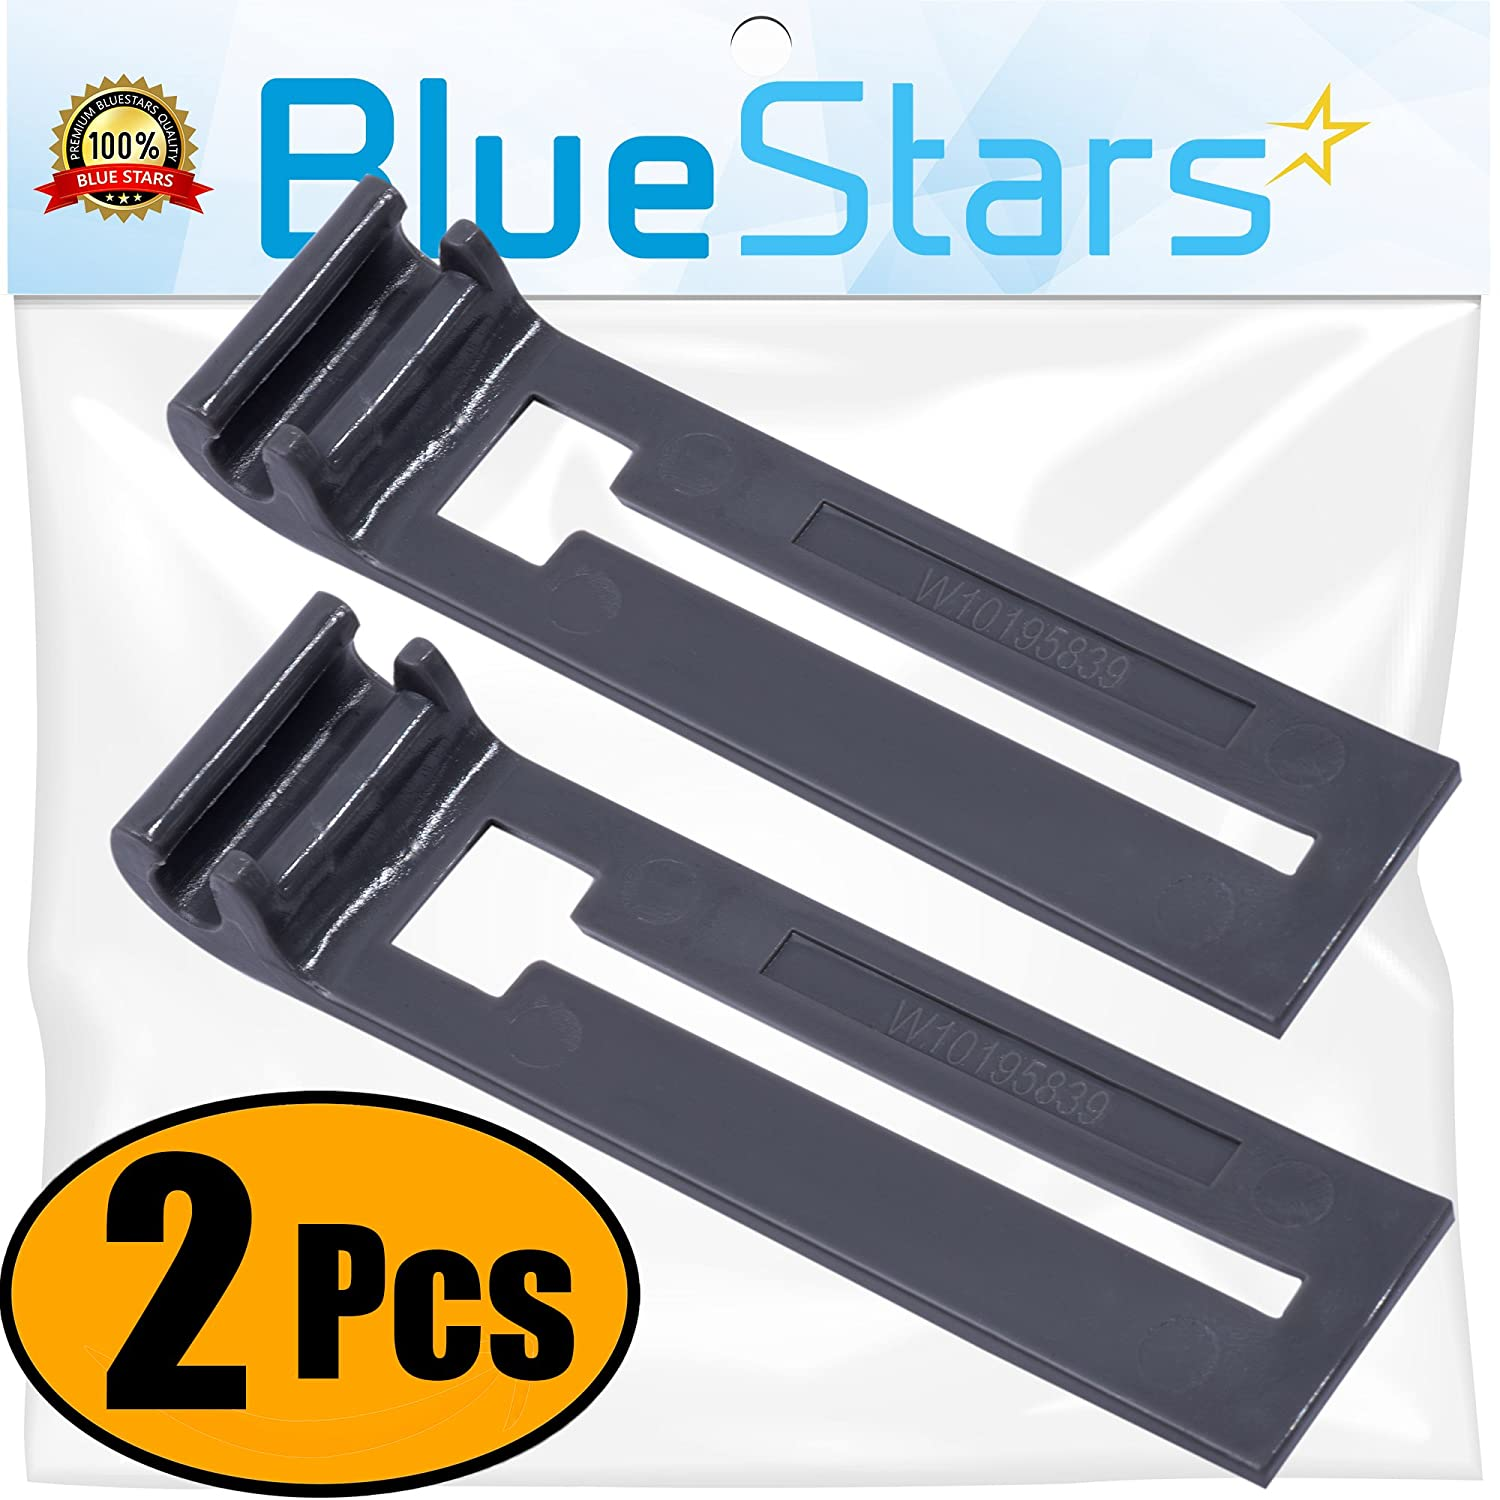 Ultra Durable W10195839 Dishwasher Rack Adjuster Replacement part by Blue Stars - Exact Fit for Whirlpool KitchenAid Kenmore Dishwashers - Replaces WPW10195839 PS11750092- PACK OF 2